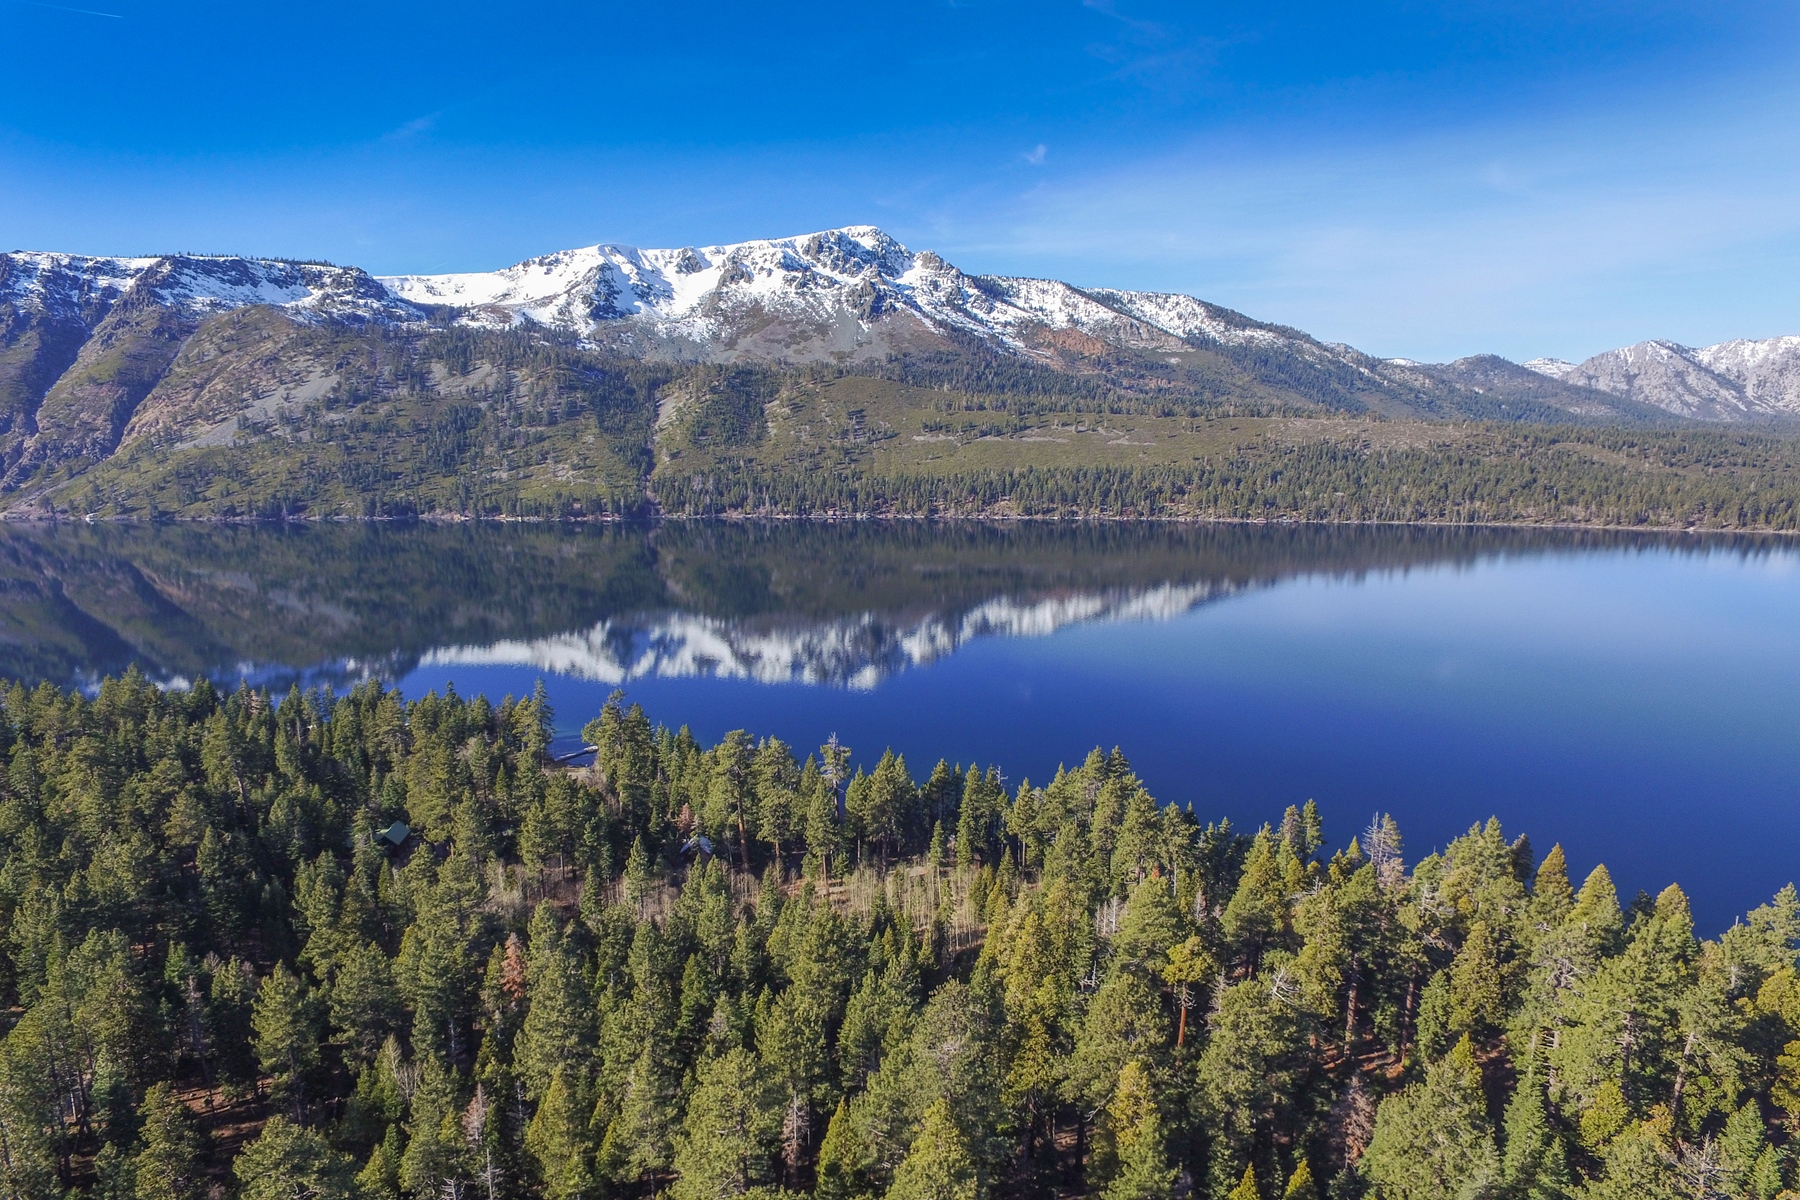 Single Family Home for Sale at 1141 Fallen Leaf Road, South Lake Tahoe, CA 96150 1141 Fallen Leaf Road South Lake Tahoe, California 96150 United States